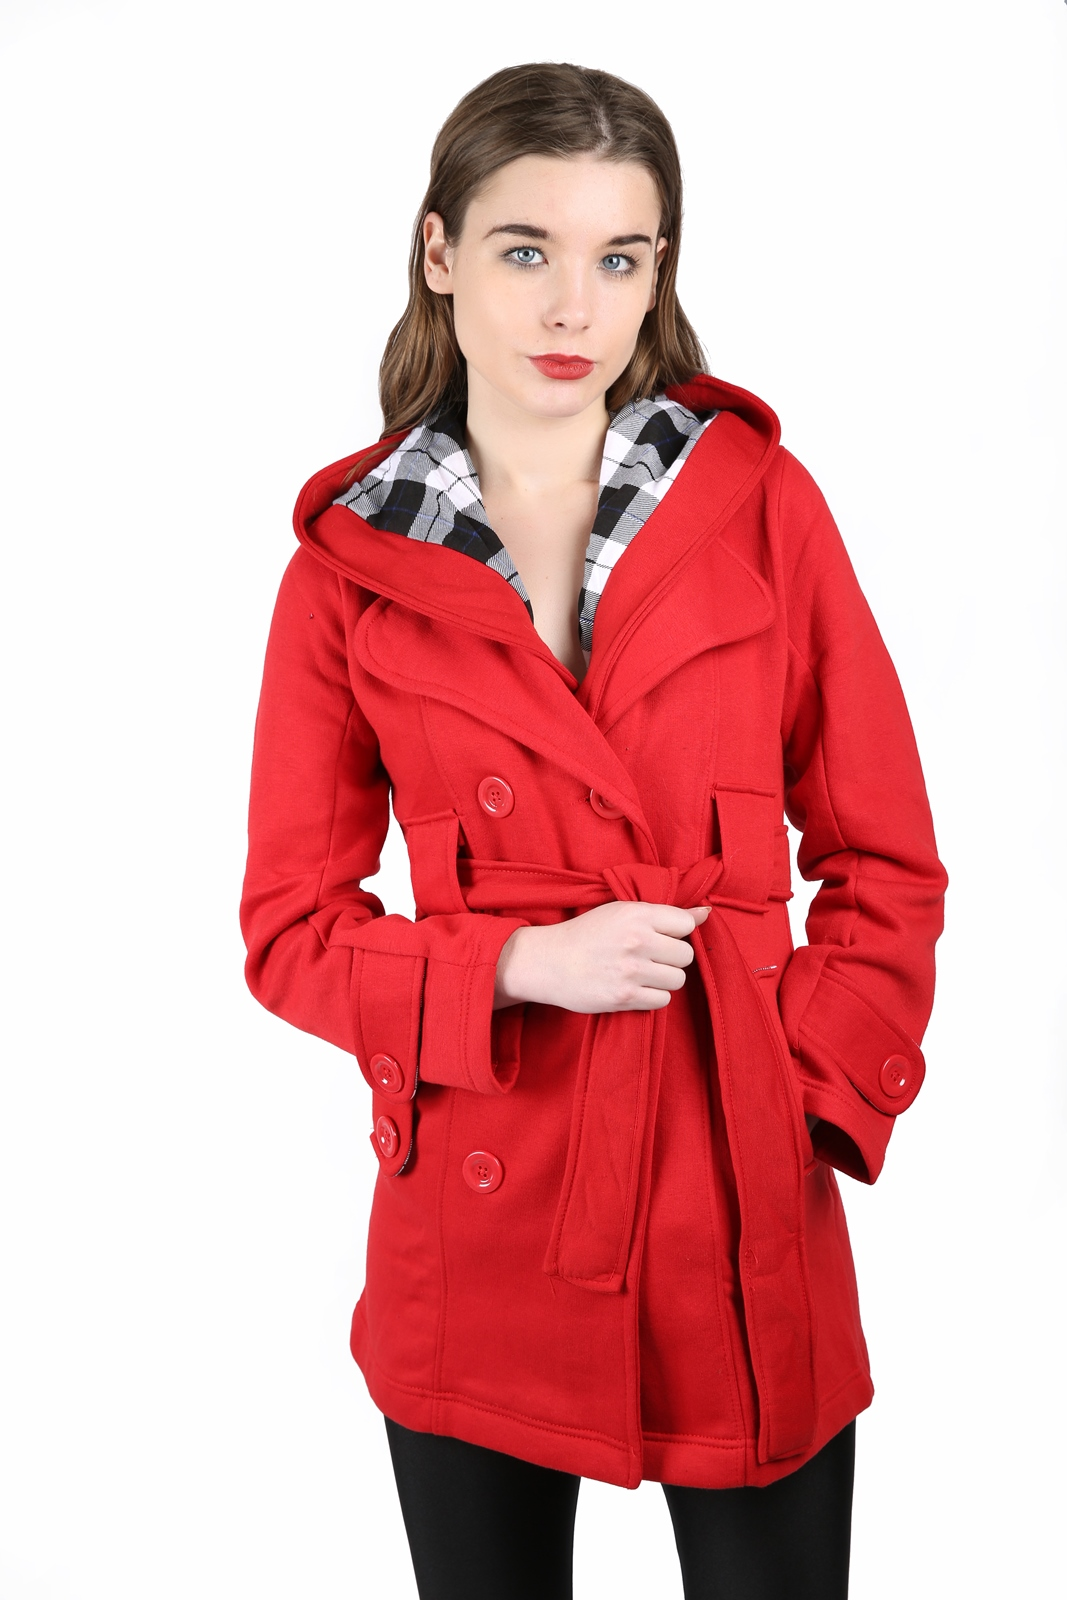 Three lengths of women's trench coats provide style and function Whether you're looking for the traditional, long women's trench coat for rainy day wear or you prefer modern style choices offered in this classic outerwear, the variety of color, materials, and prints available offers plenty of options.